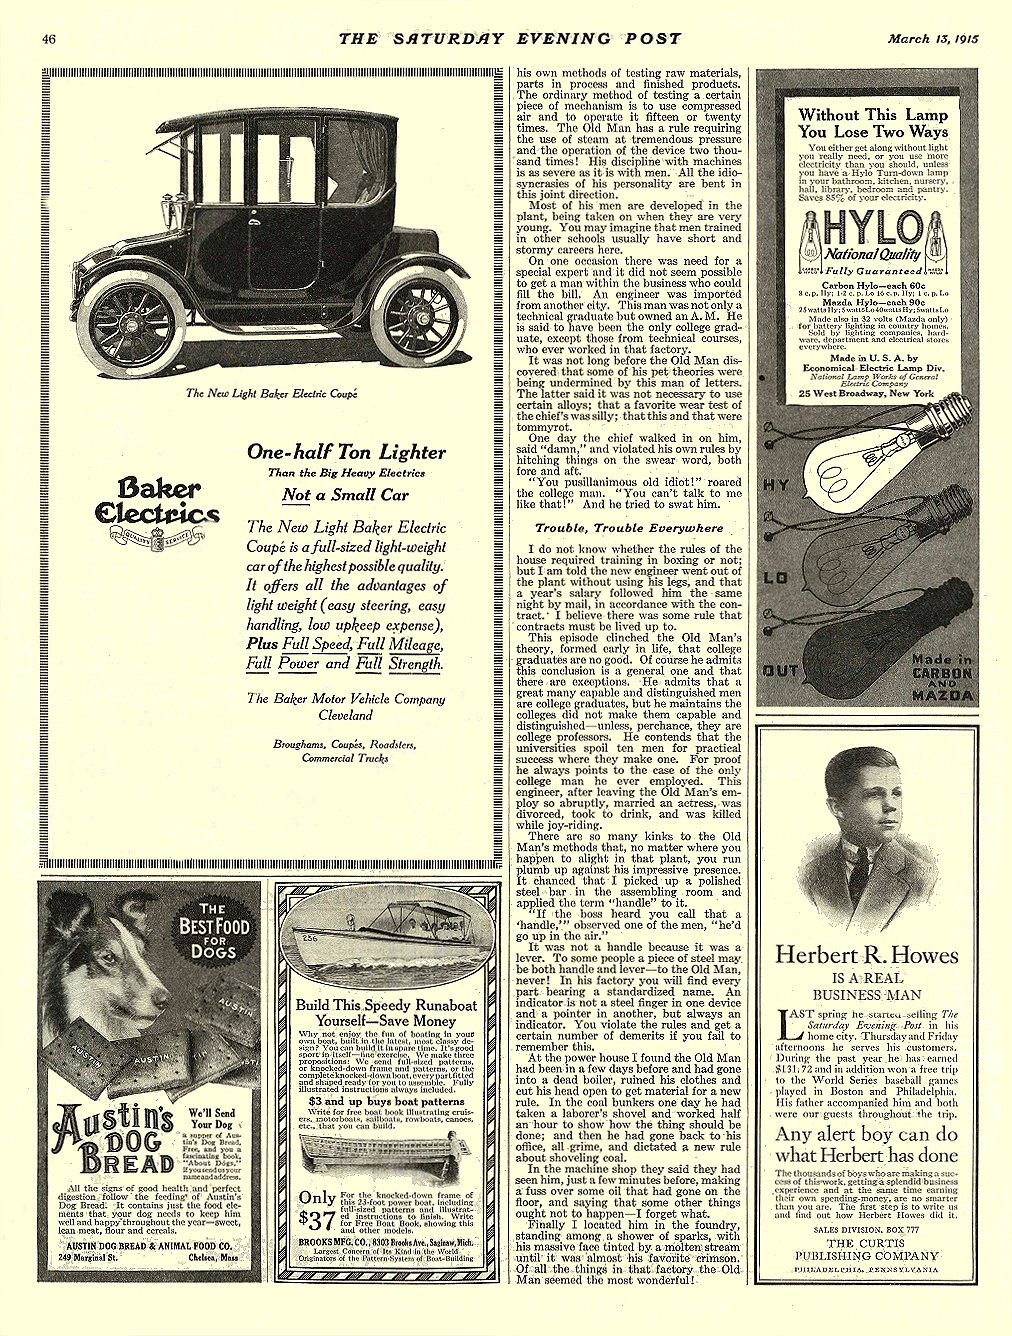 1915 3 13 BAKER Electric One-half Ton Lighter The Baker Motor Vehicle Company Cleveland, OHIO THE SATURDAY EVENING POST March 13, 1915 10.5″x13.75″ page 46